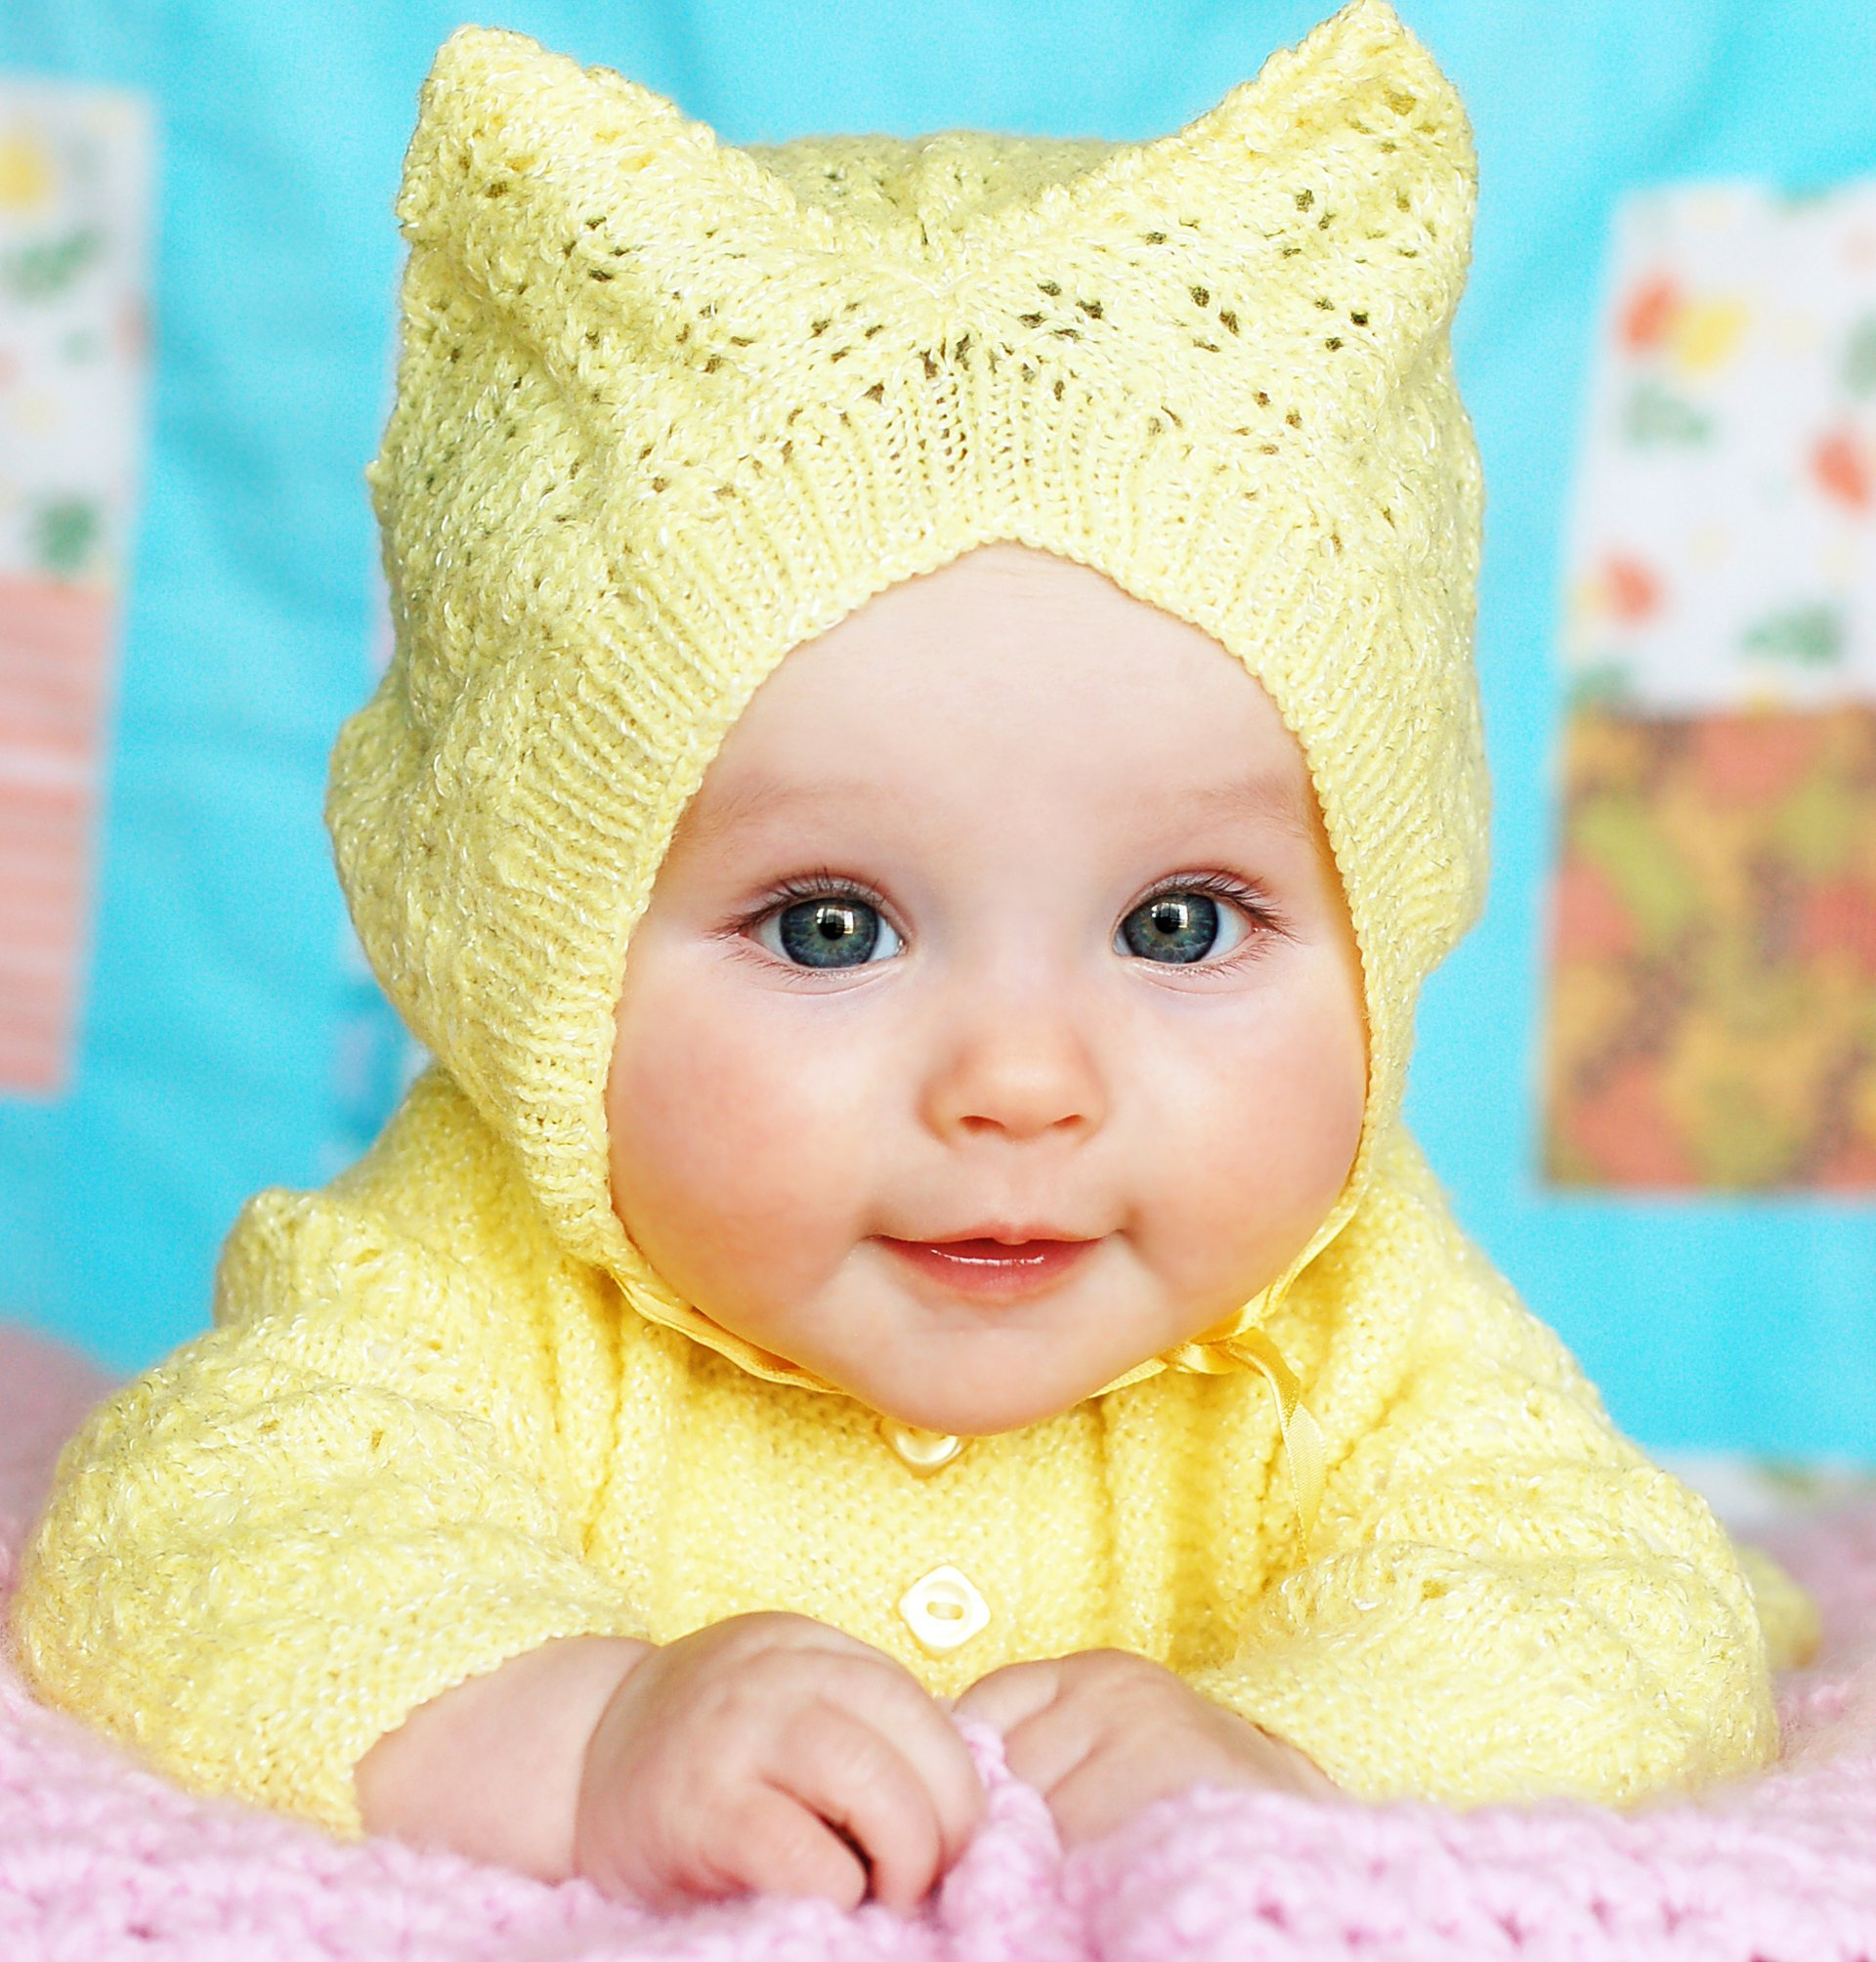 Pretty Babies Wallpapers